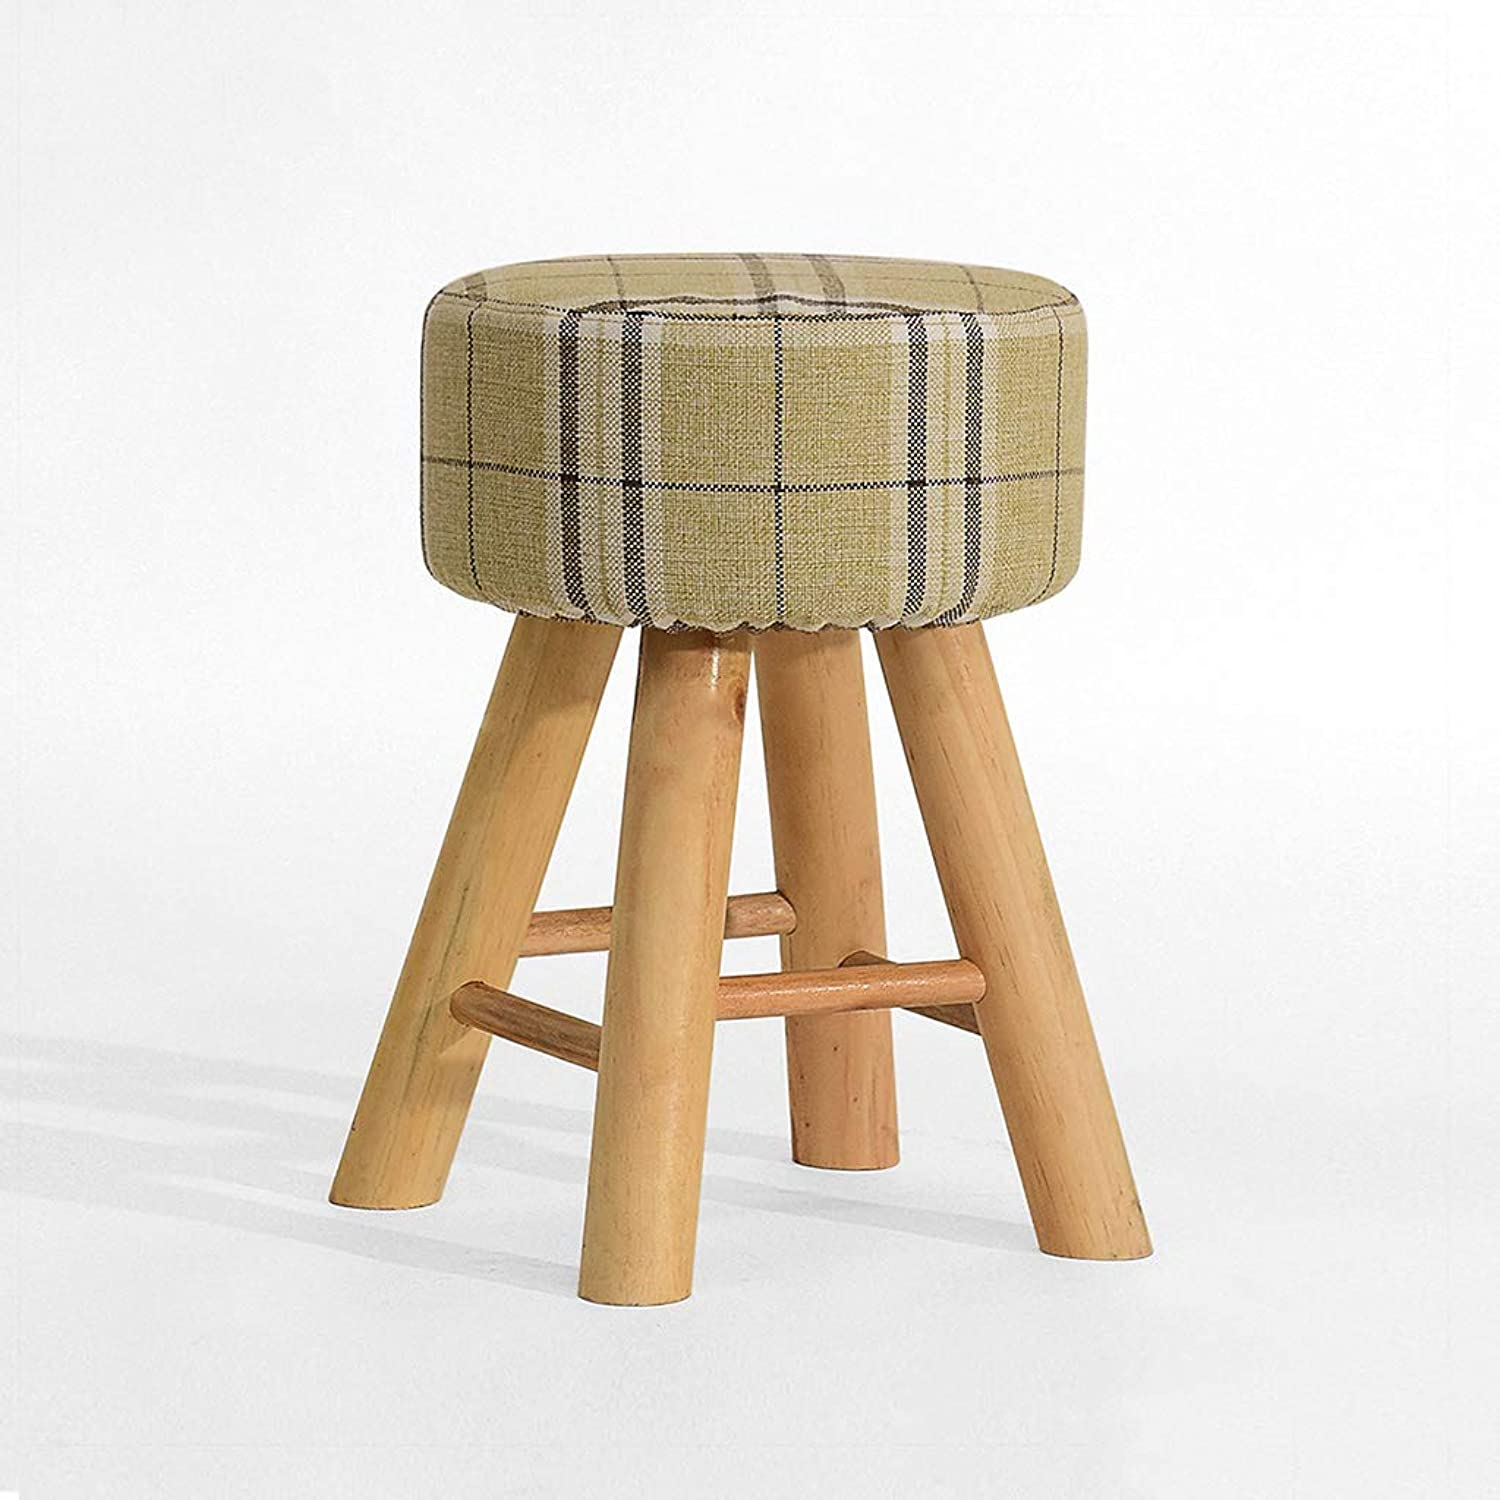 Small Stool, Solid Wood Material Fashion Creative, Strong and Stable, Round Stool Dressing Stool